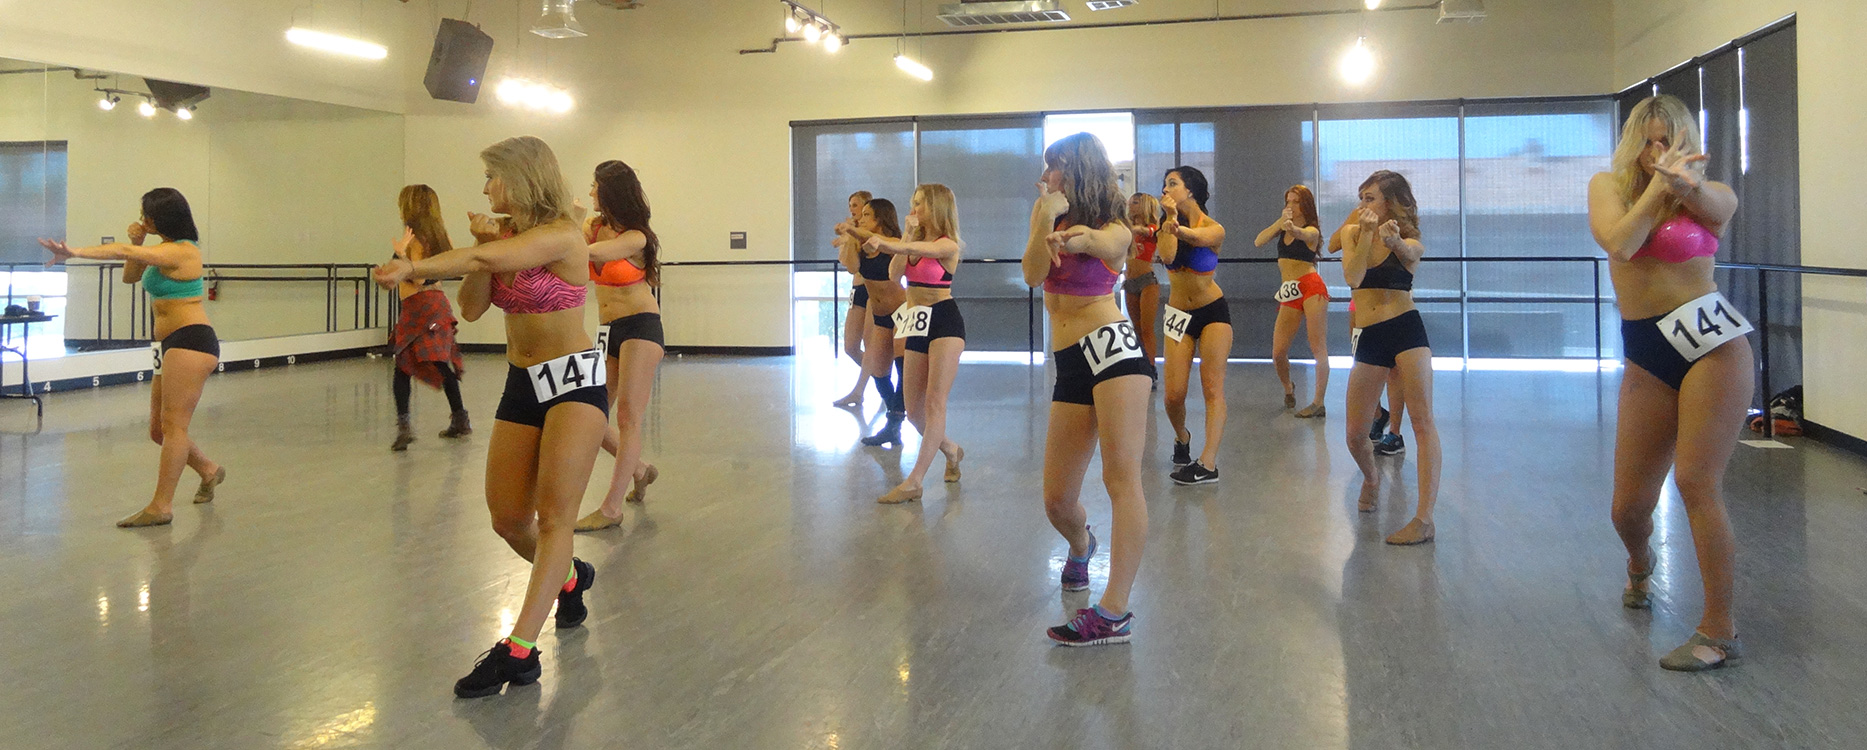 Fun-Day-at-Cheerleader-Tryouts,-Las-Vegas-Outlaws